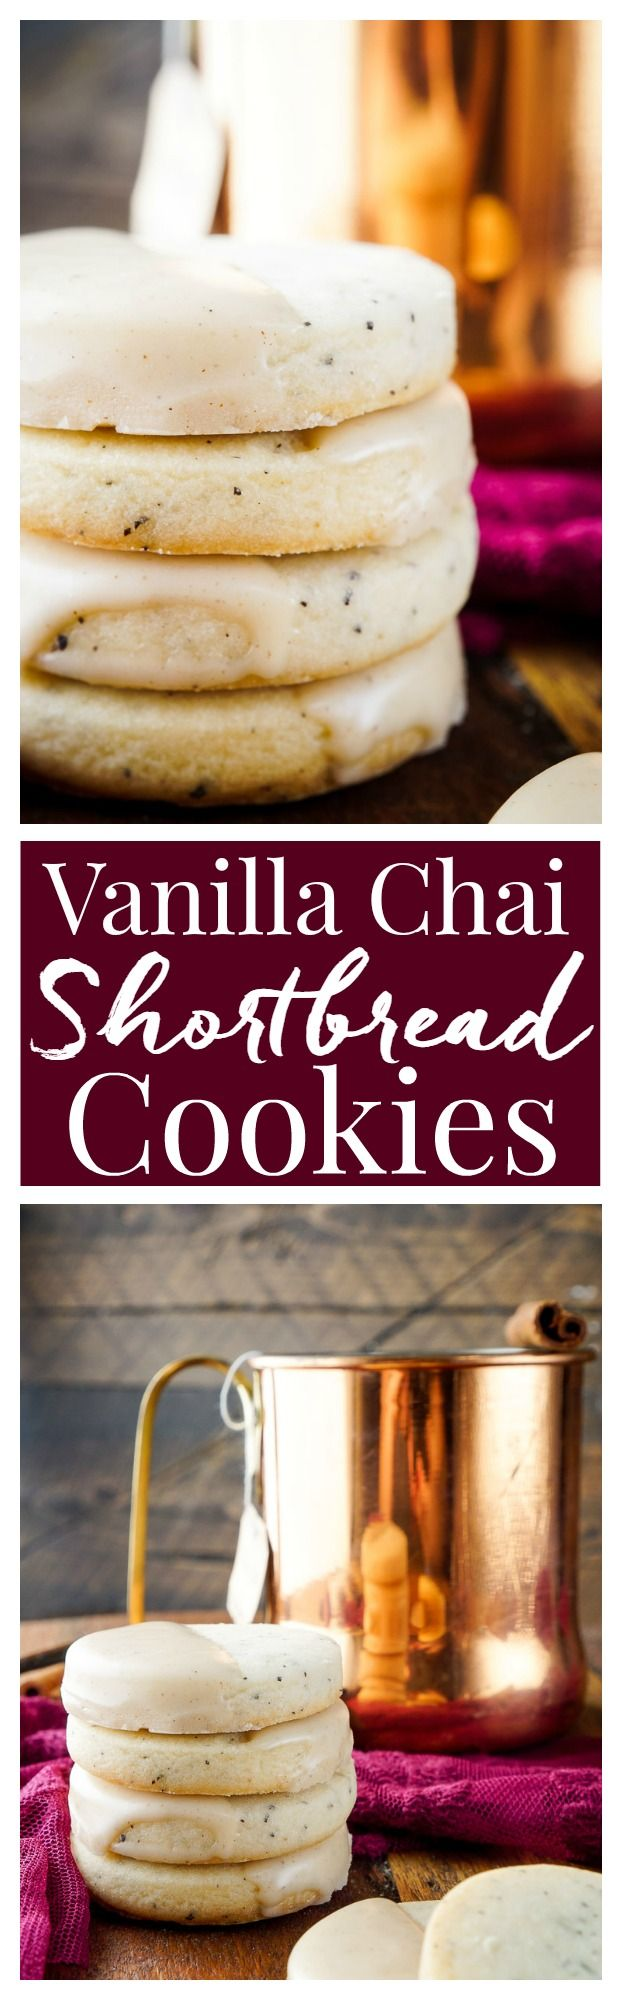 These Vanilla Chai Shortbread Cookies are simple with a little spice and a whole lot of cozy! Made with loose tea leaves, flour, butter, and sugar, these cookies are easy and fast to make. More